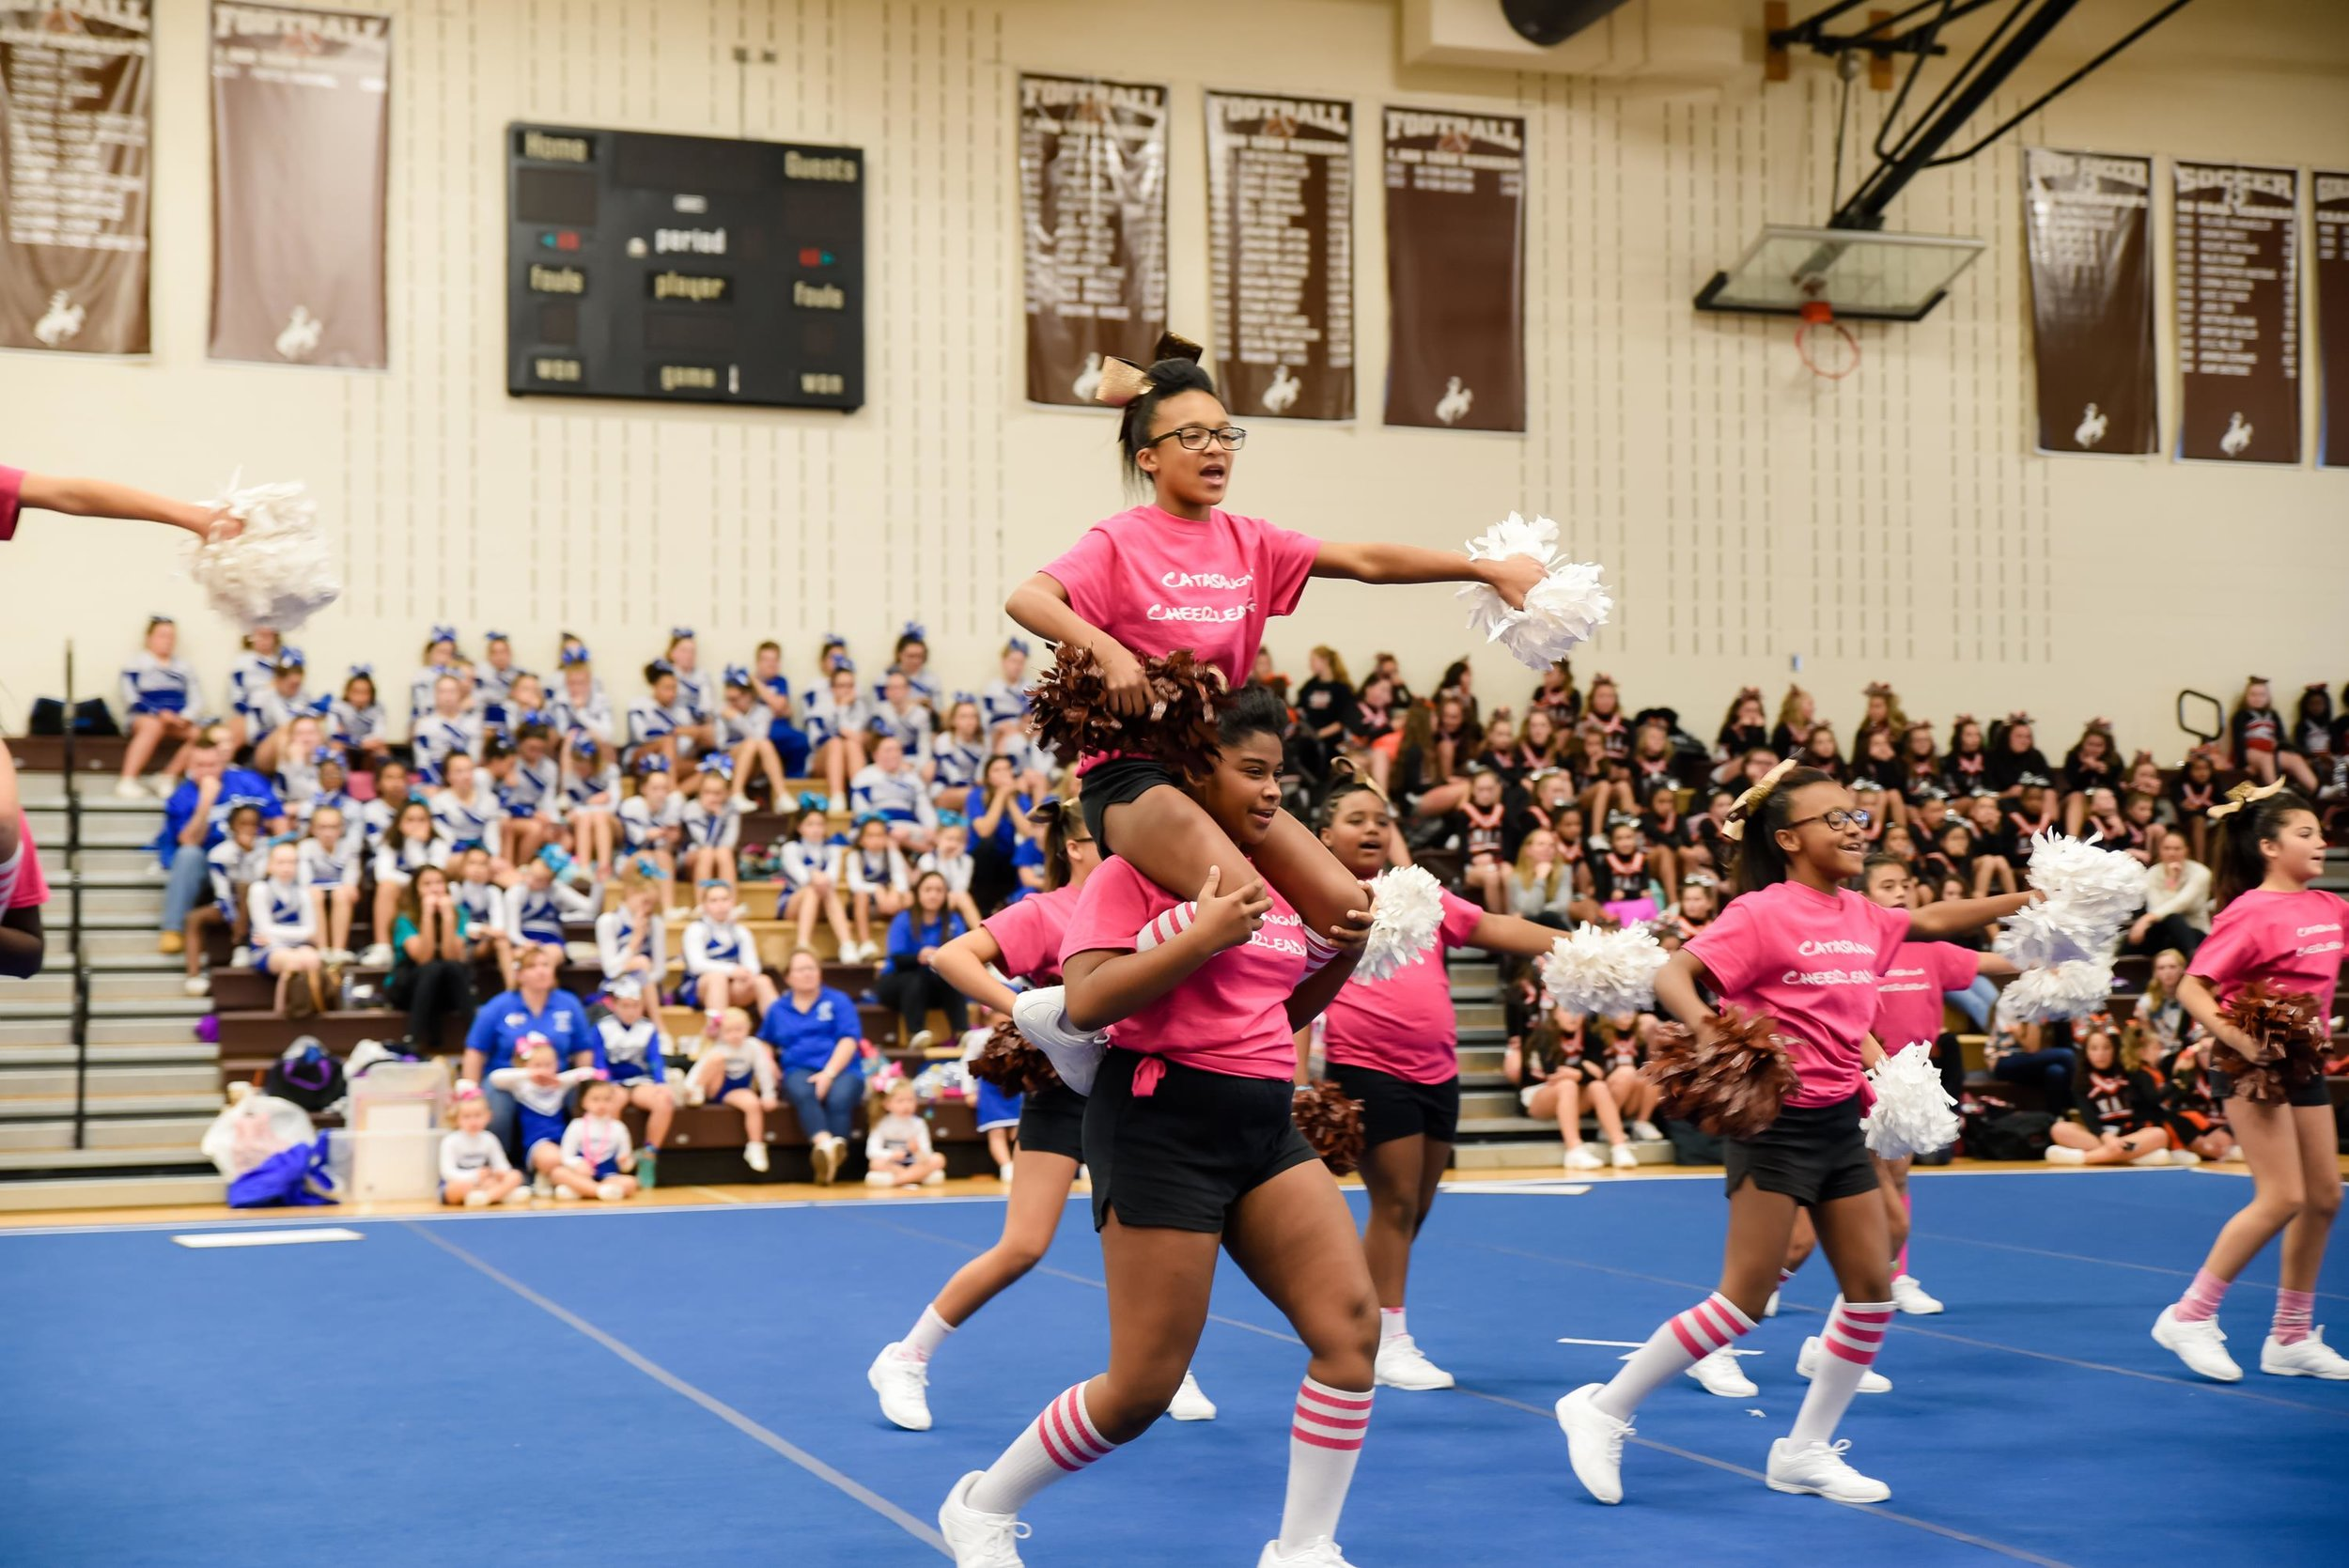 CheerUnity2016Session1 (902 of 1068) (Copy).jpg